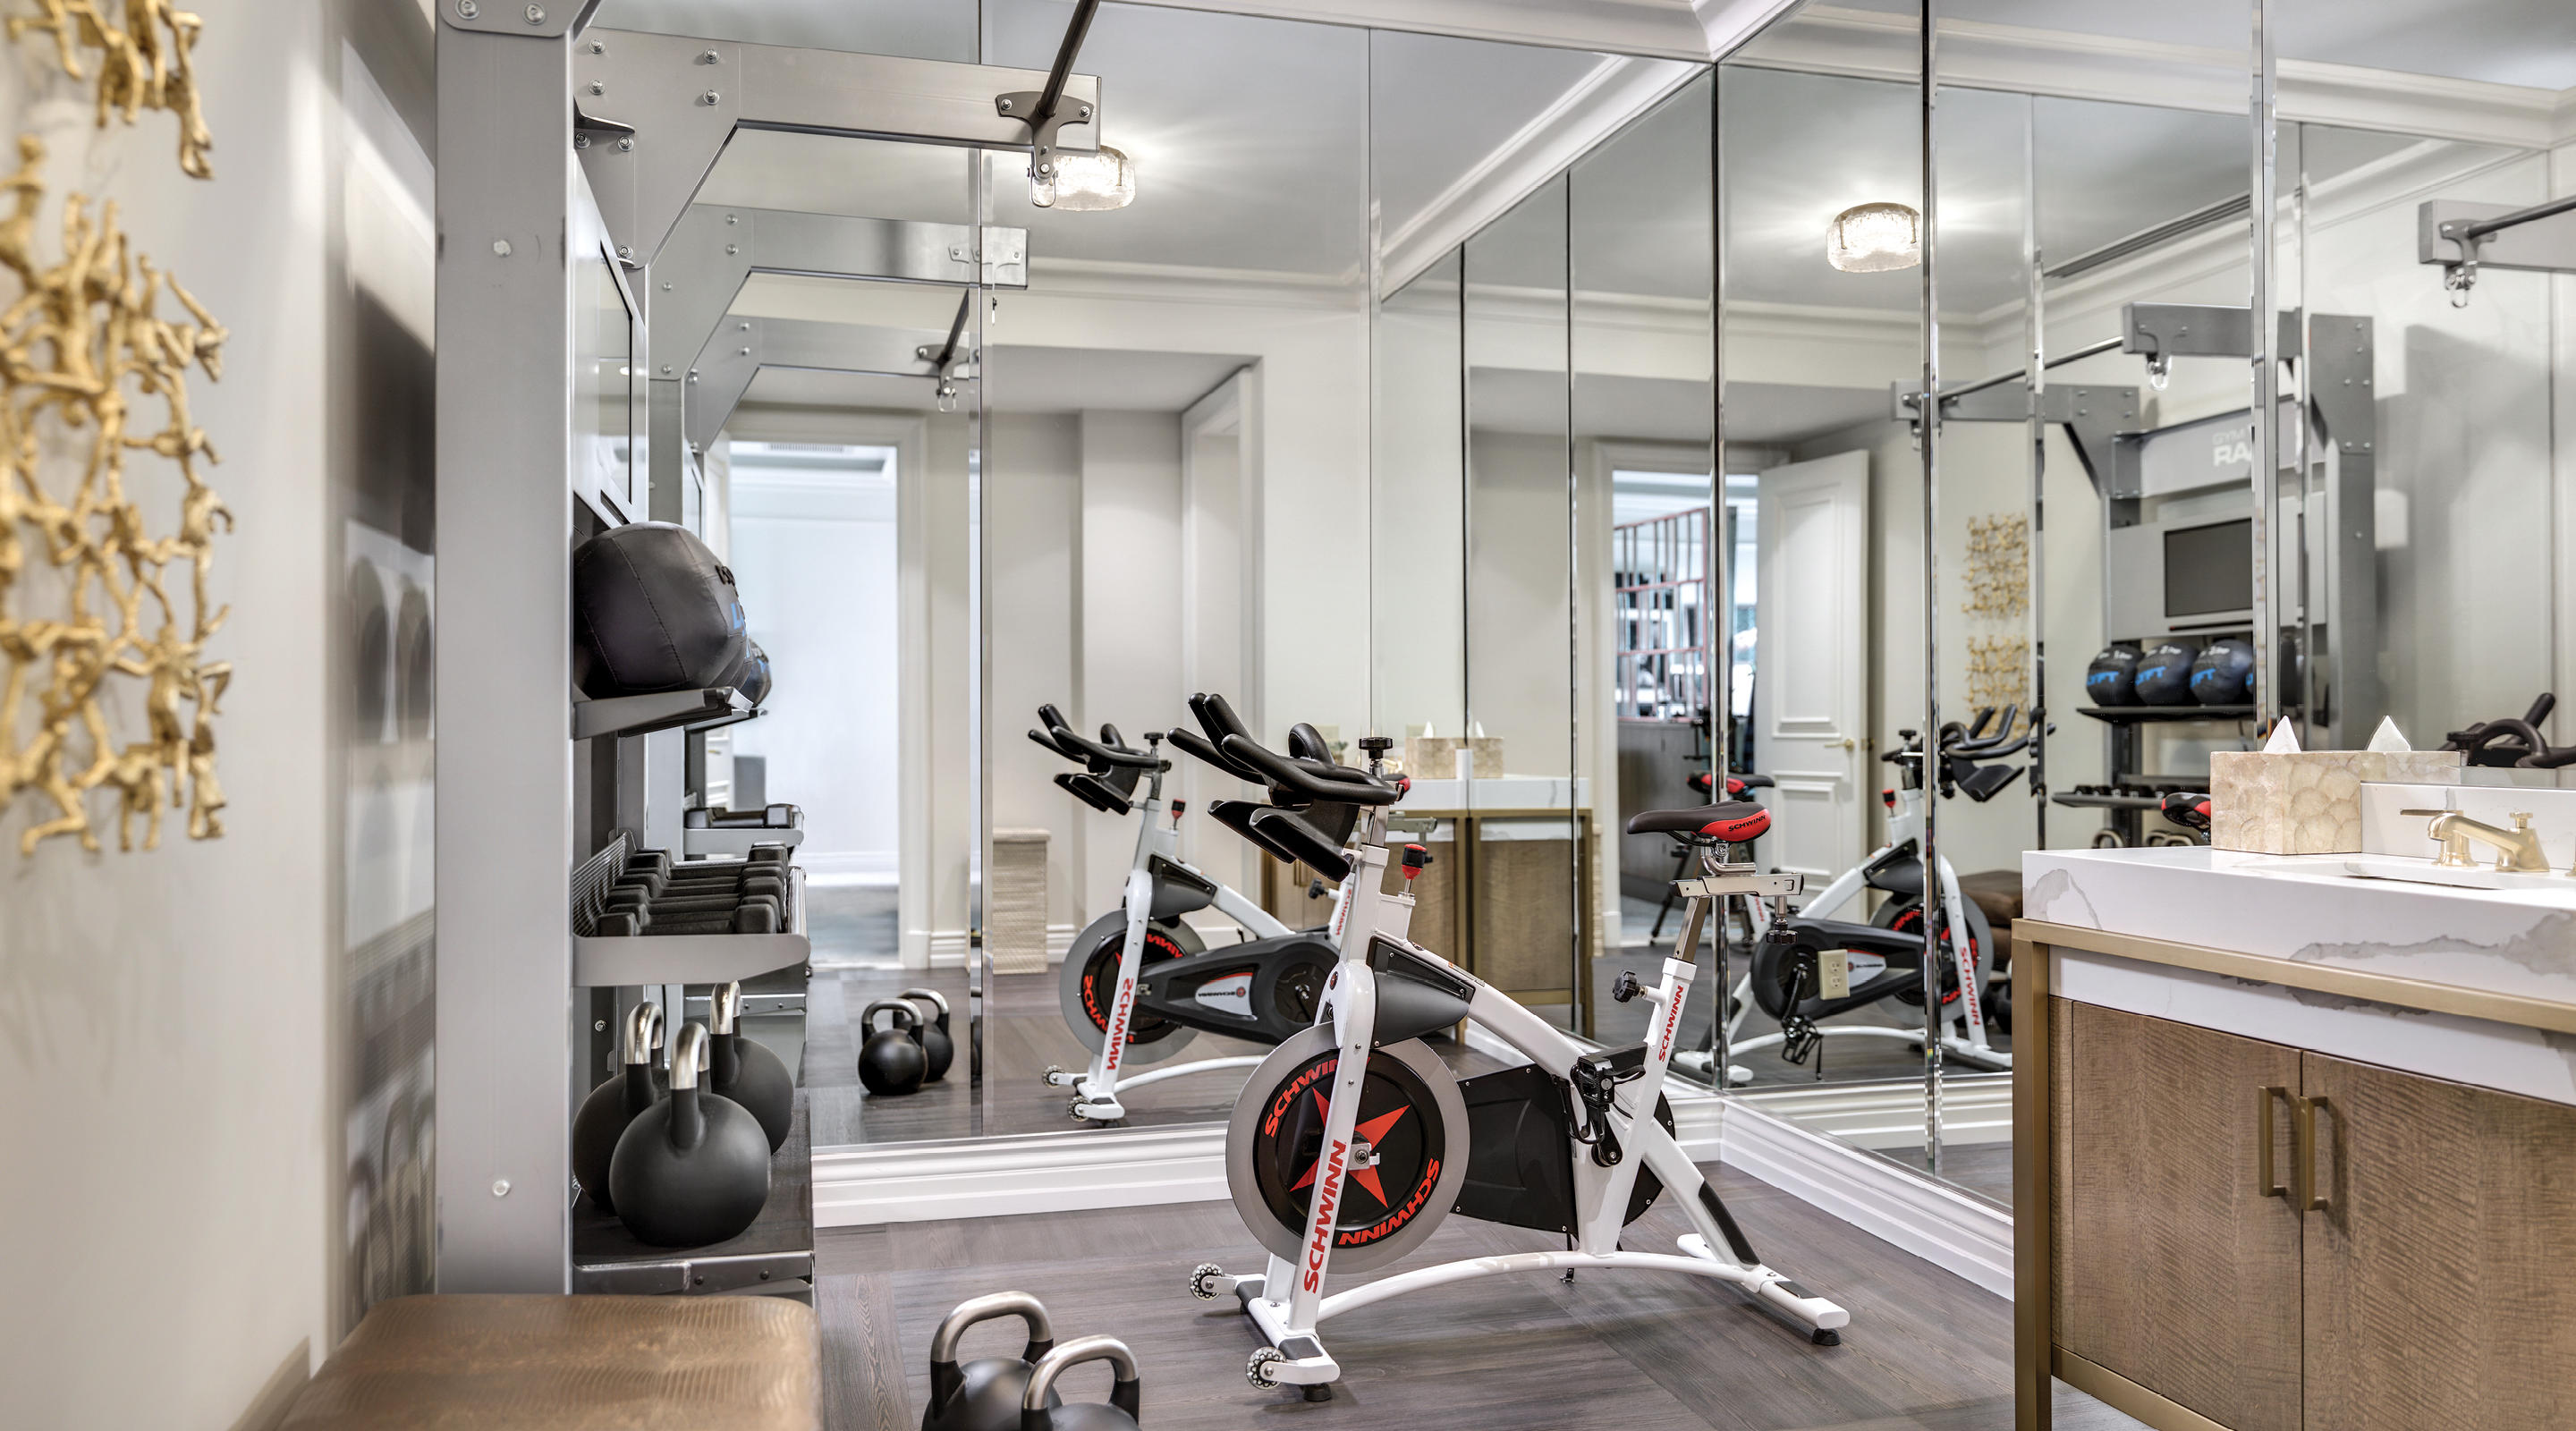 A well-supplied gym with all the essentials for a great workout.